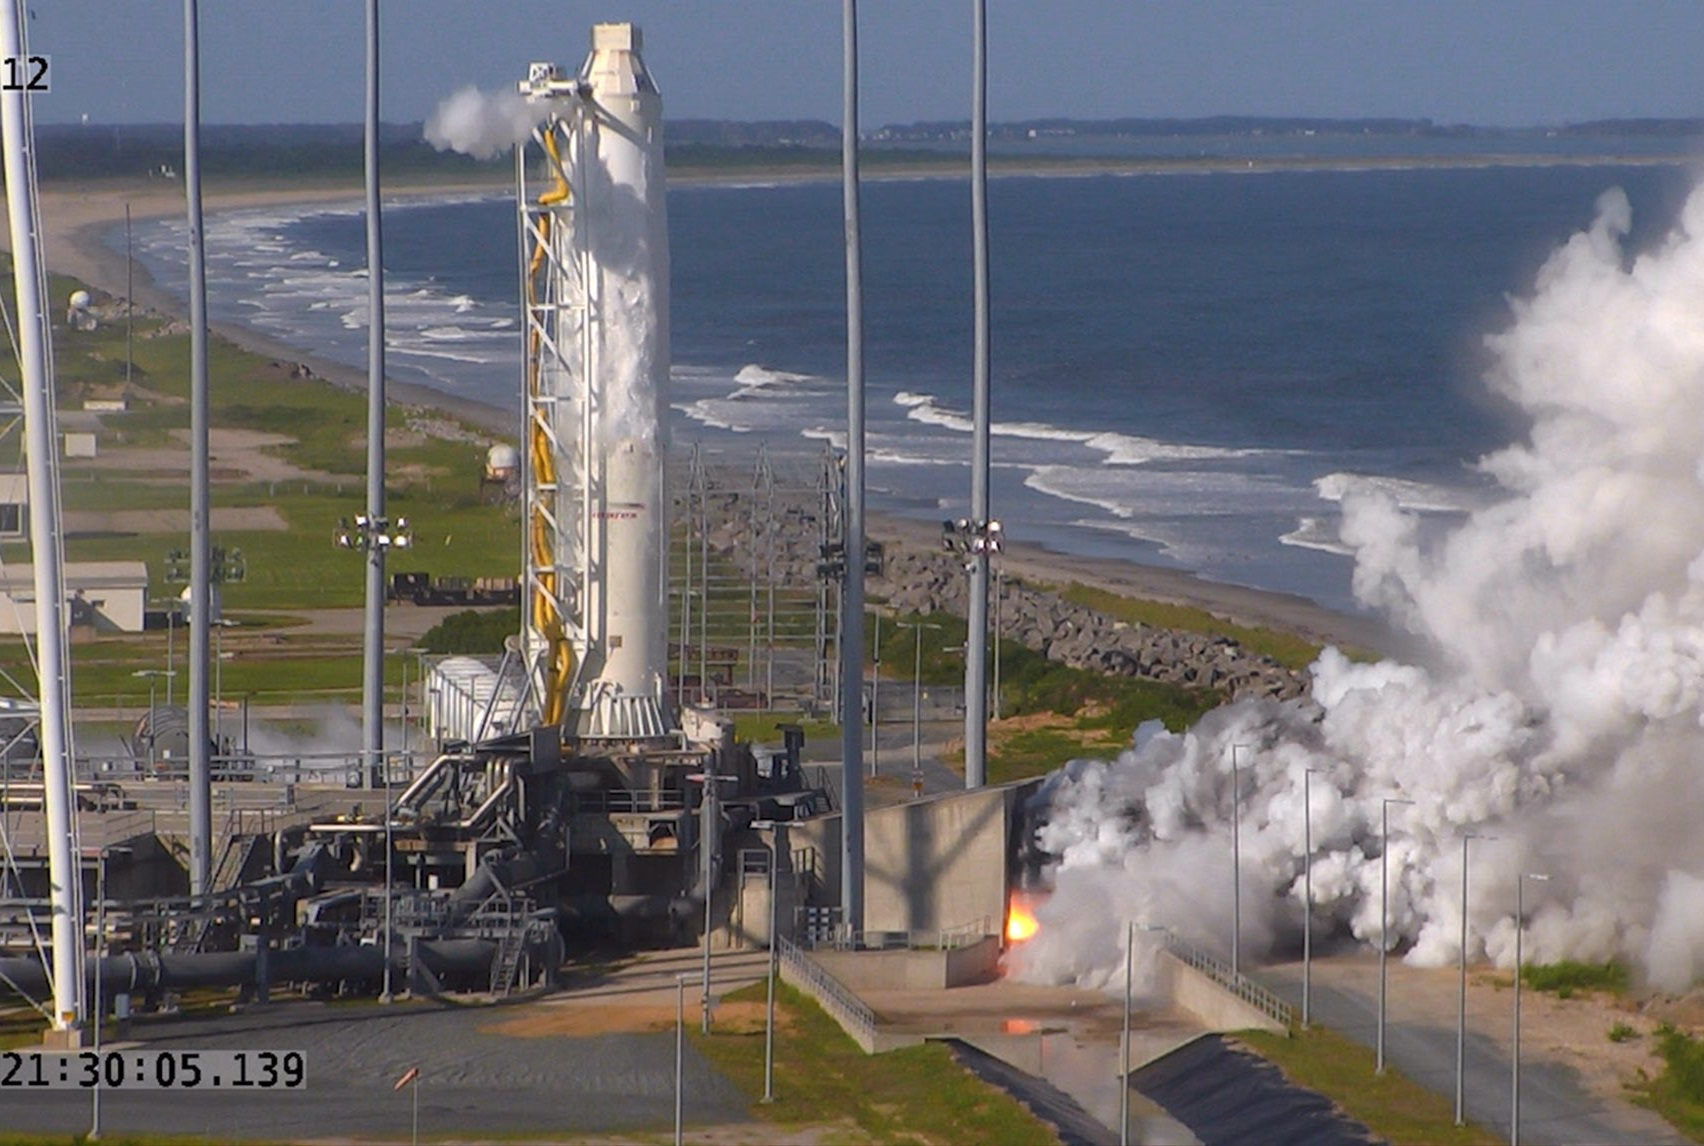 """In late-spring, 2016, Orbital ATK conducted a """"hot fire"""" test to ensure the new RD-181 engines worked properly. Photo Credit: Orbital ATK"""